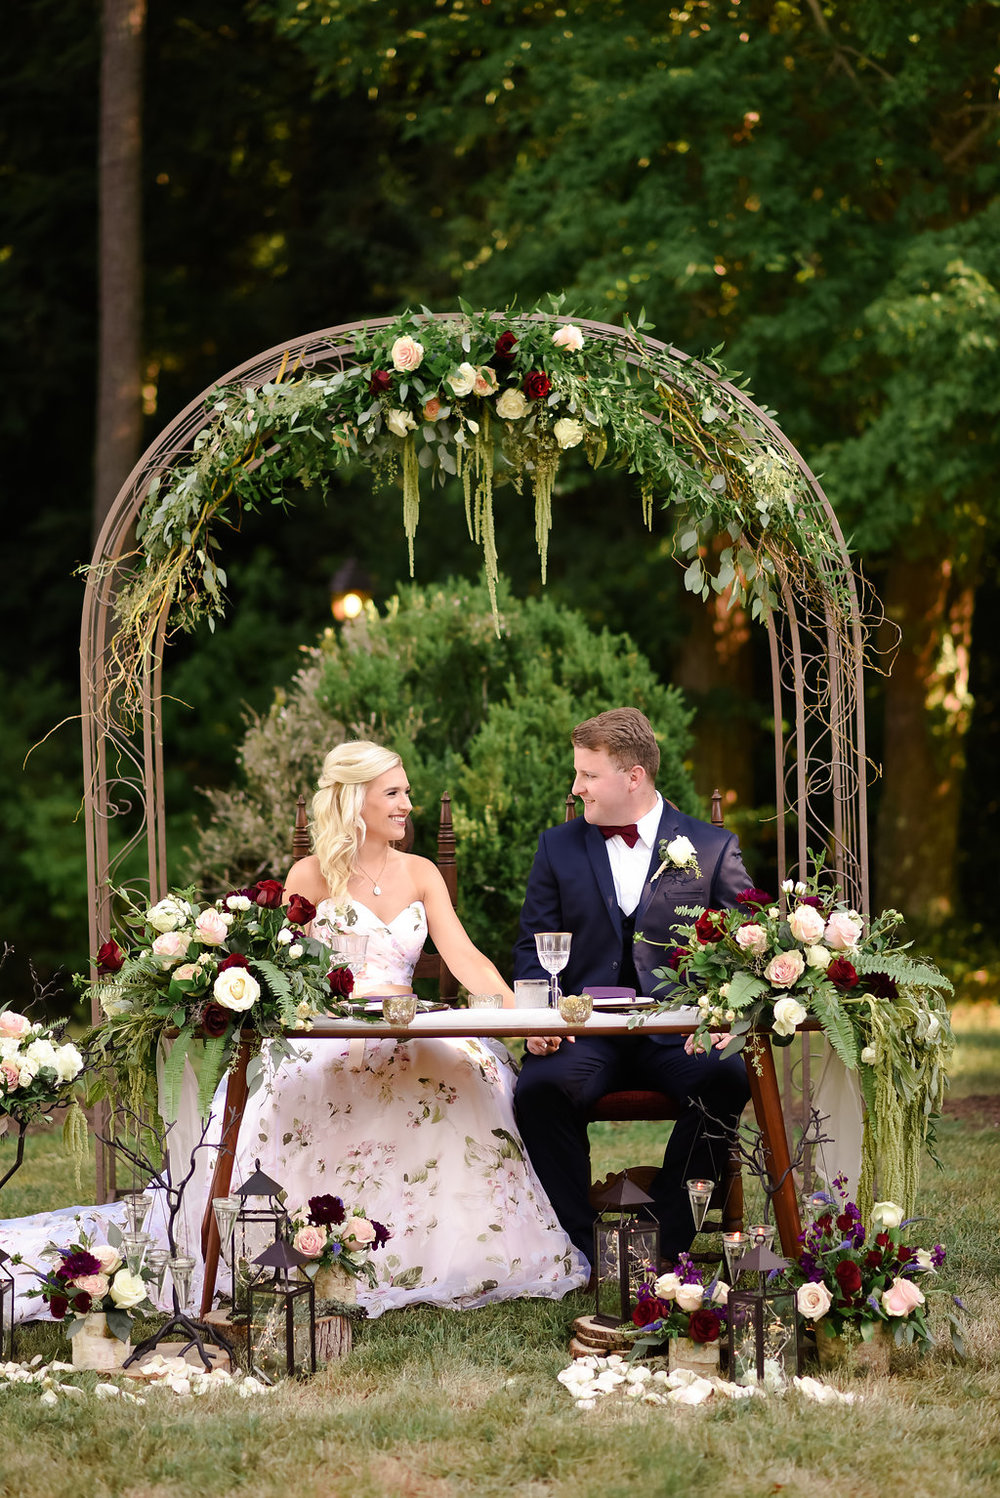 midsummers-eve-wedding-floral-blush-dress-david-tutera-cary-hill-plantation-photo-virginia-bride-132.jpg